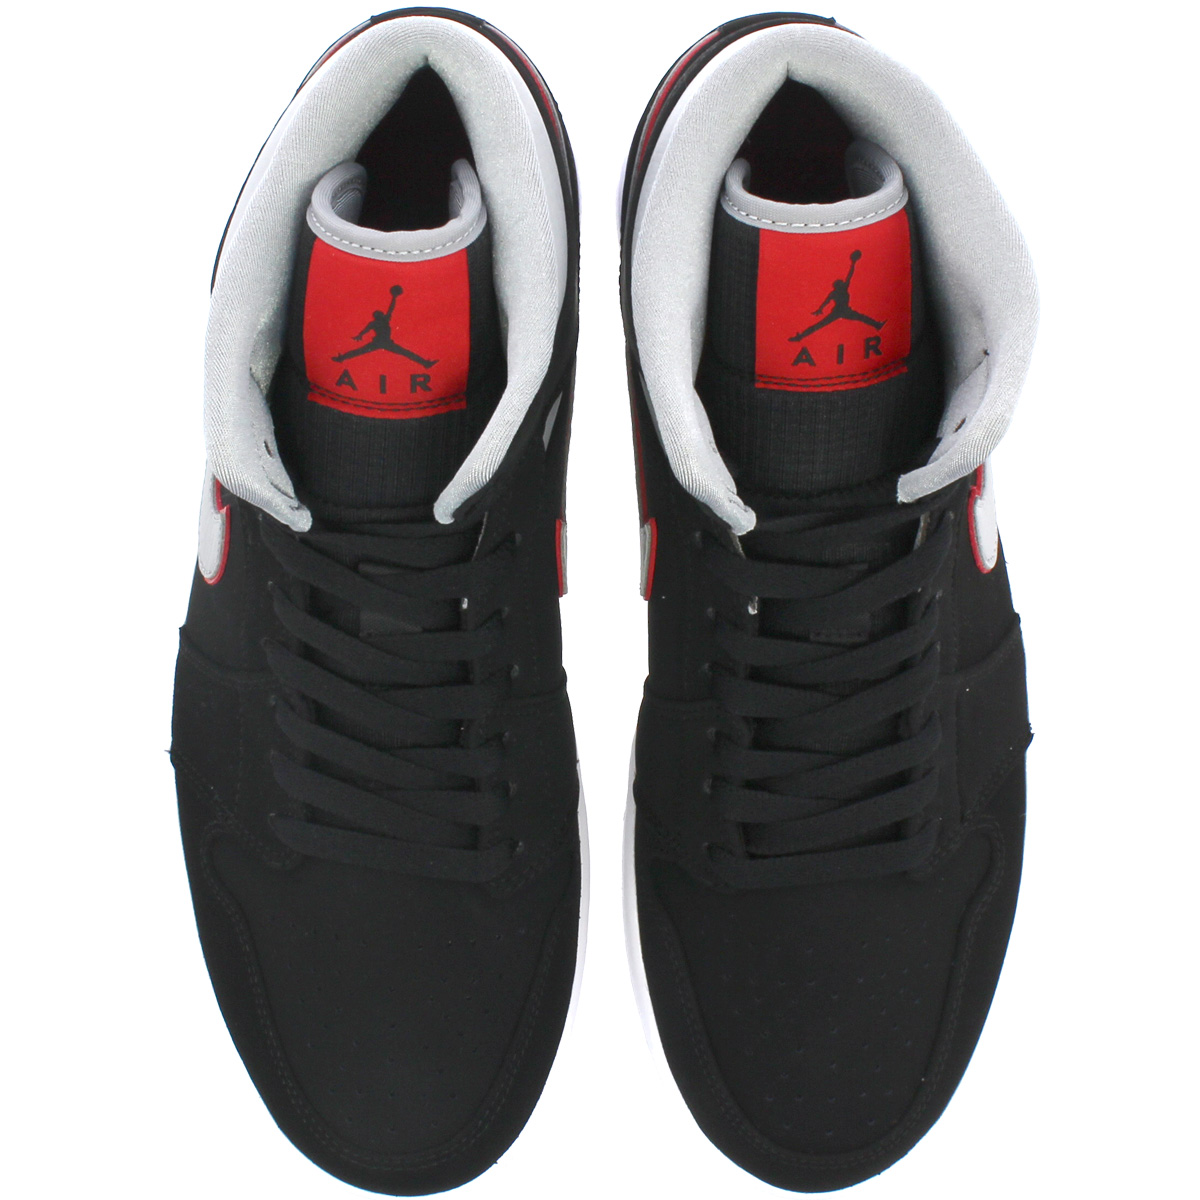 sports shoes 3ff50 dbe7a NIKE AIR JORDAN 1 MID Nike Air Jordan 1 mid BLACK PARTICLE GREY WHITE GYM  RED 554,724-060